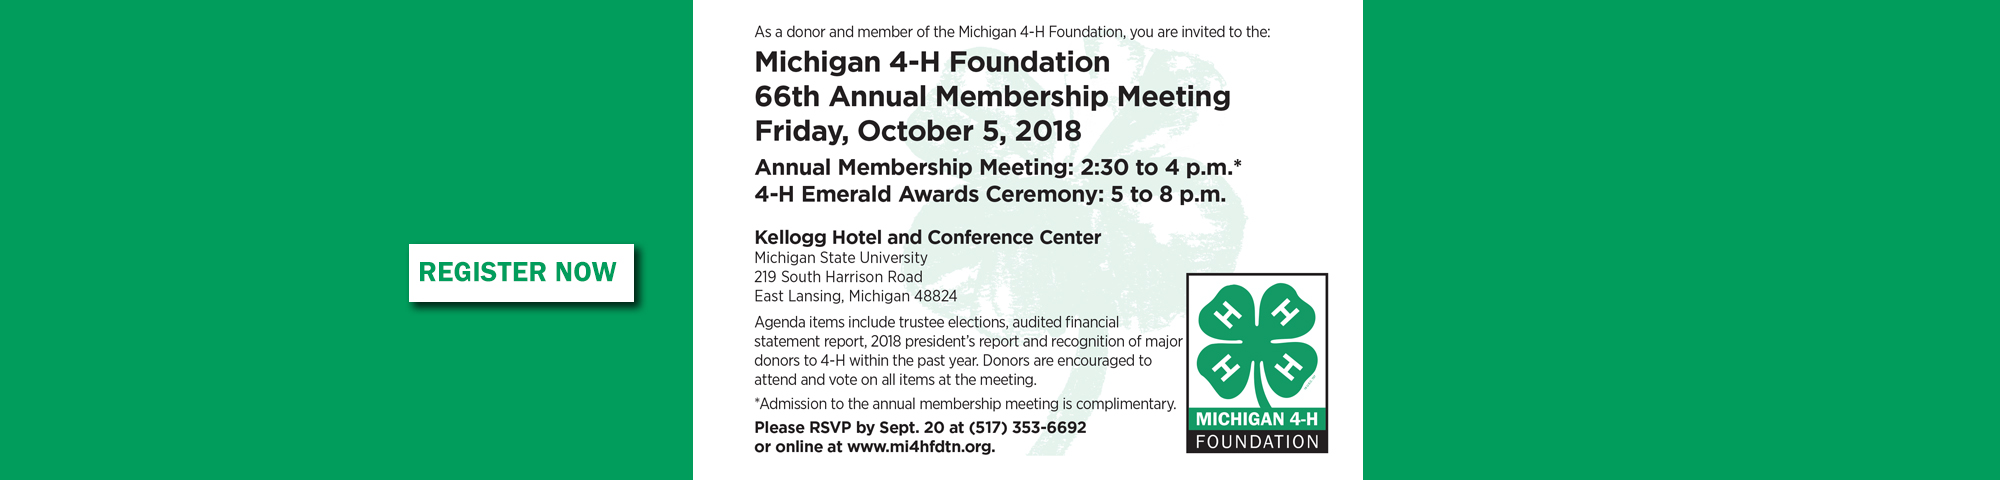 Michigan 4-H Foundation Annual Membership Meeting - October 5, 2018 from 2:30 - 4 p.m. at the Kellogg Hotel and Conference Center in East Lansing, MI